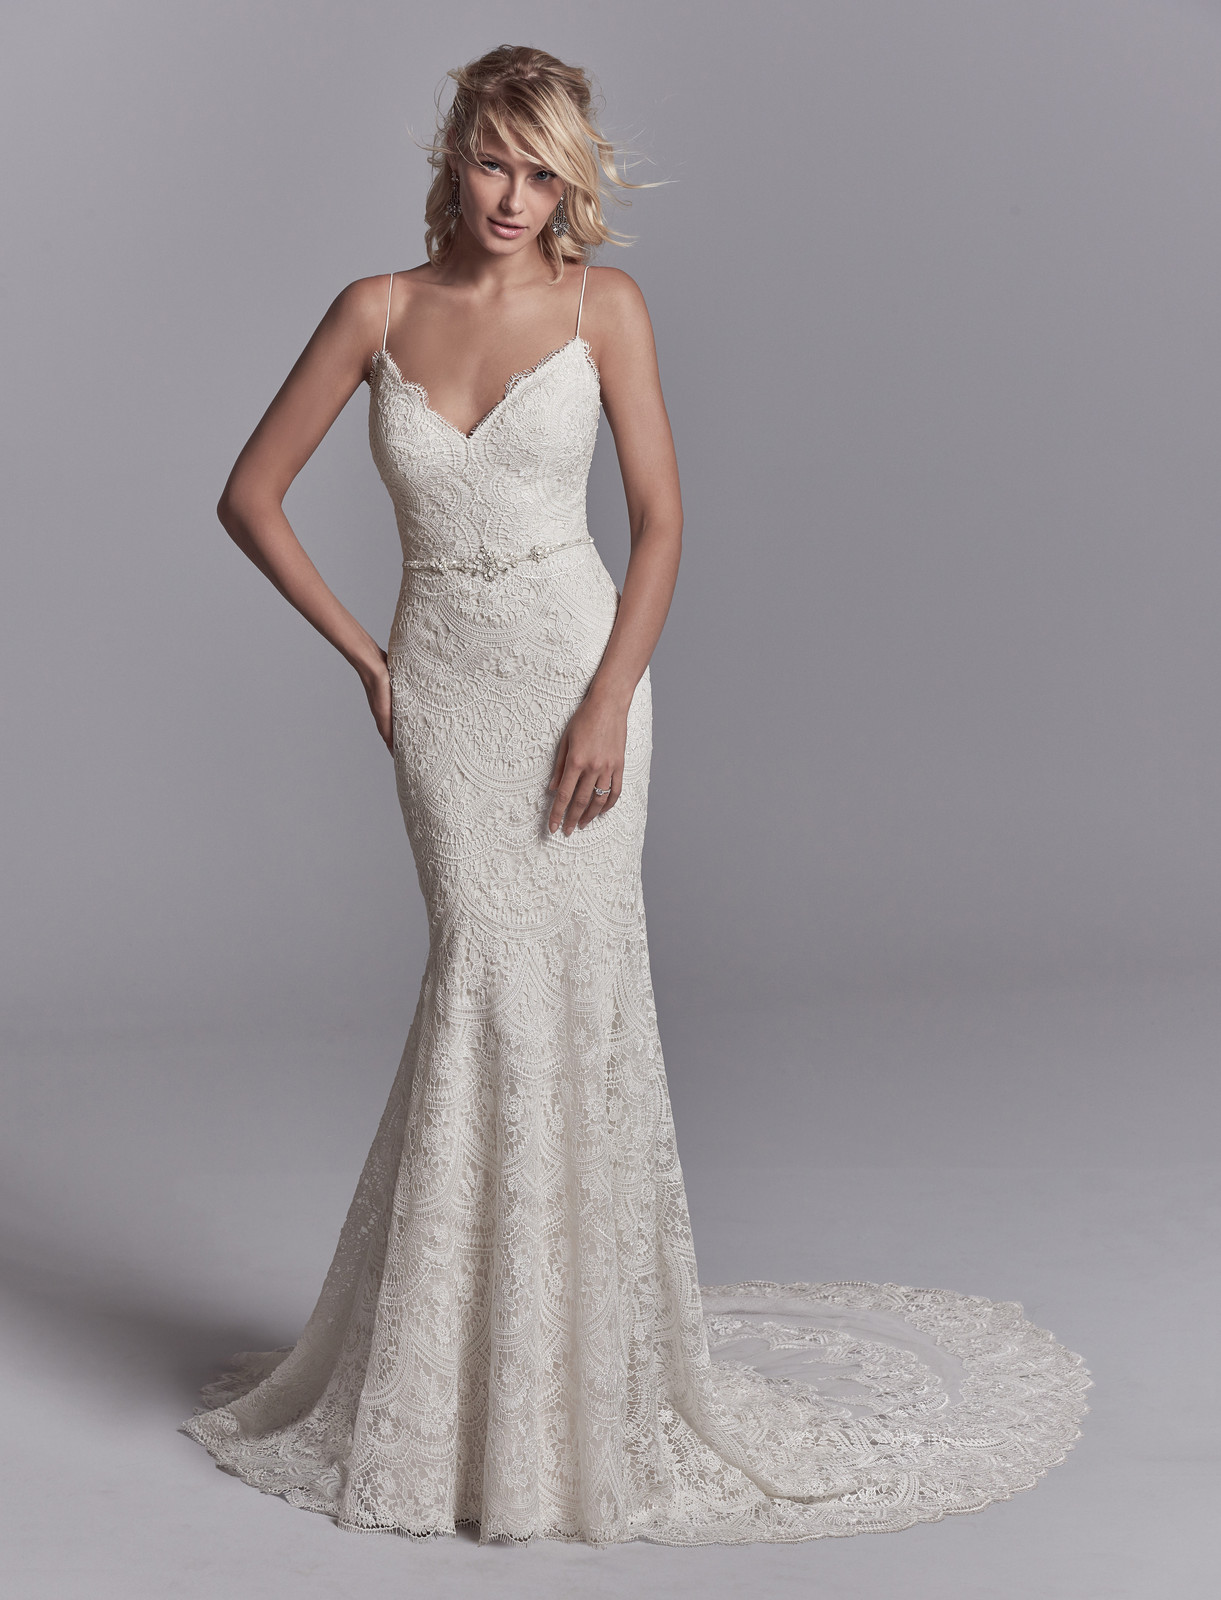 0289c72bf7b Allover lace motifs drift over tulle and Inessa Jersey in this sexy  fit-and-flare wedding dress